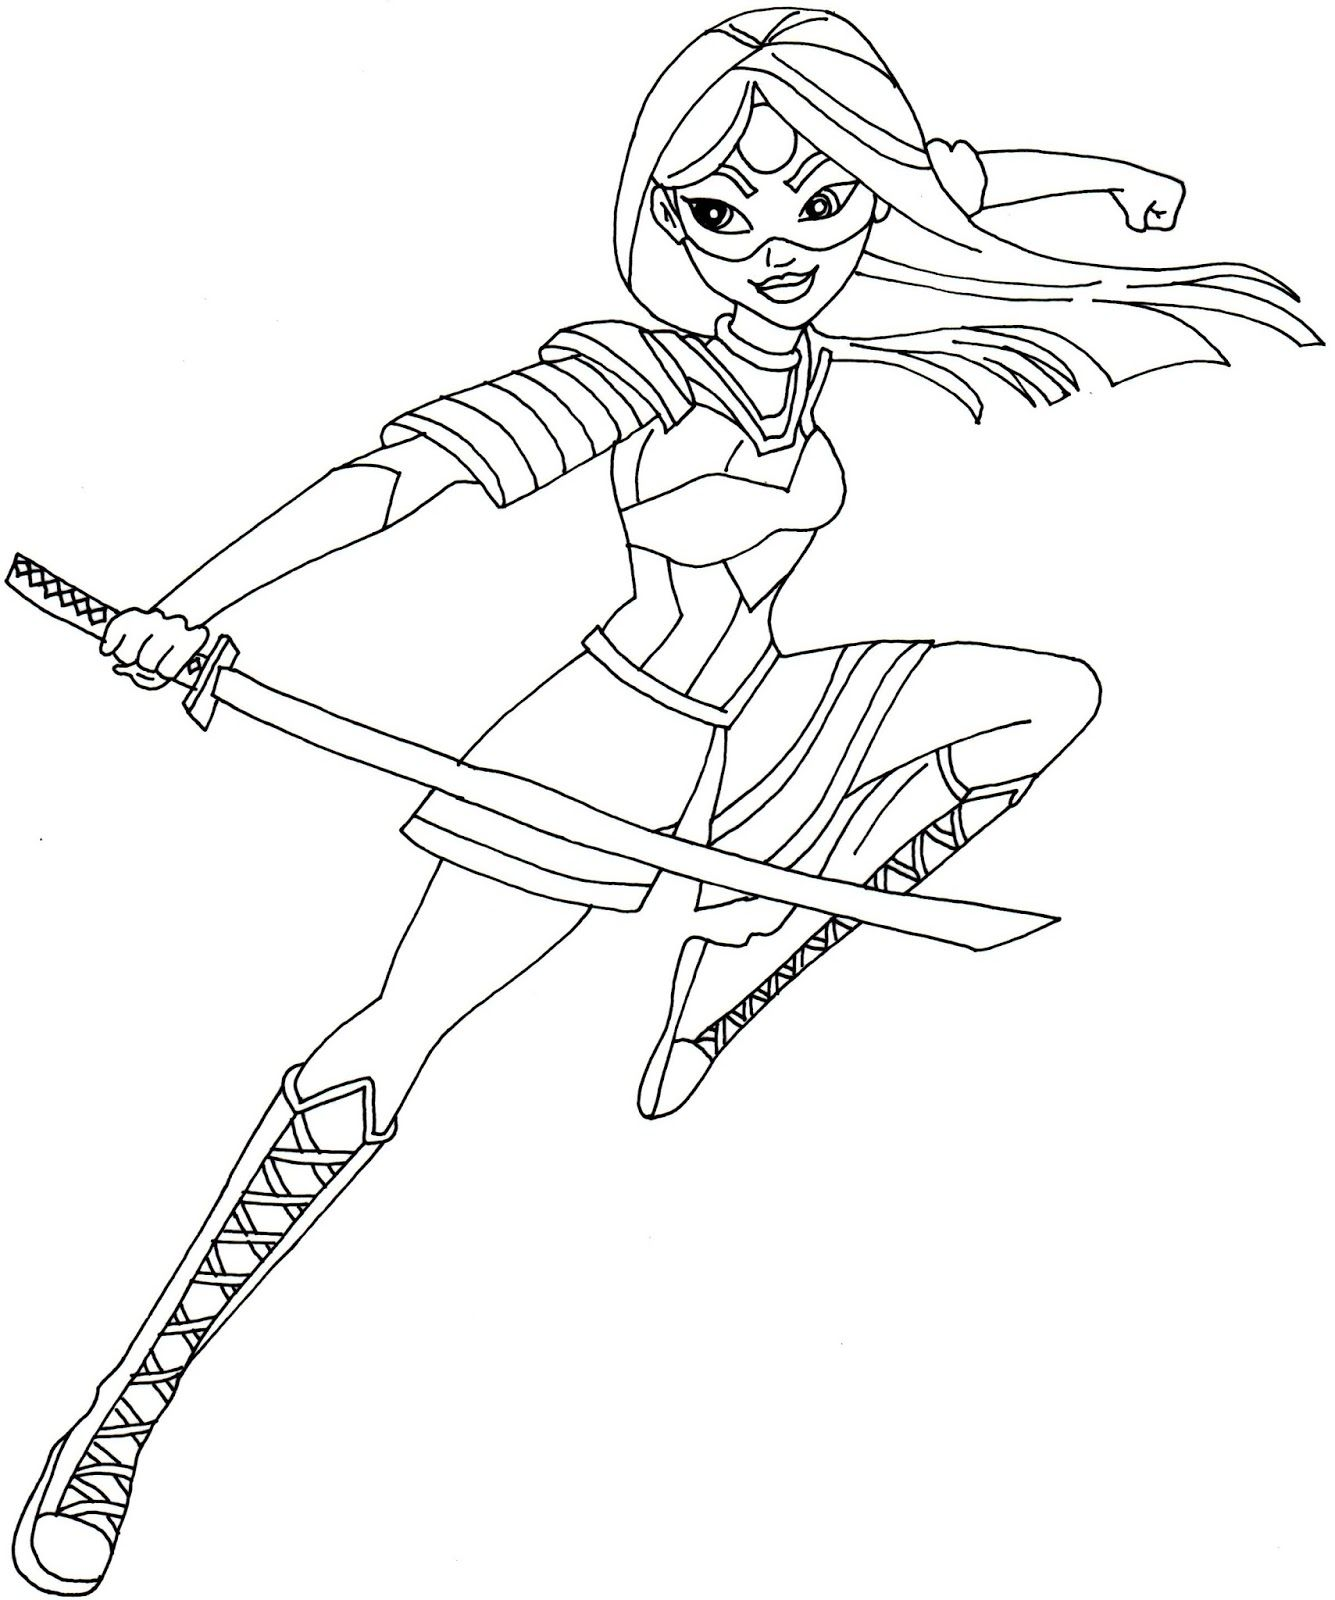 Free printable super hero high coloring page for Katana One of my